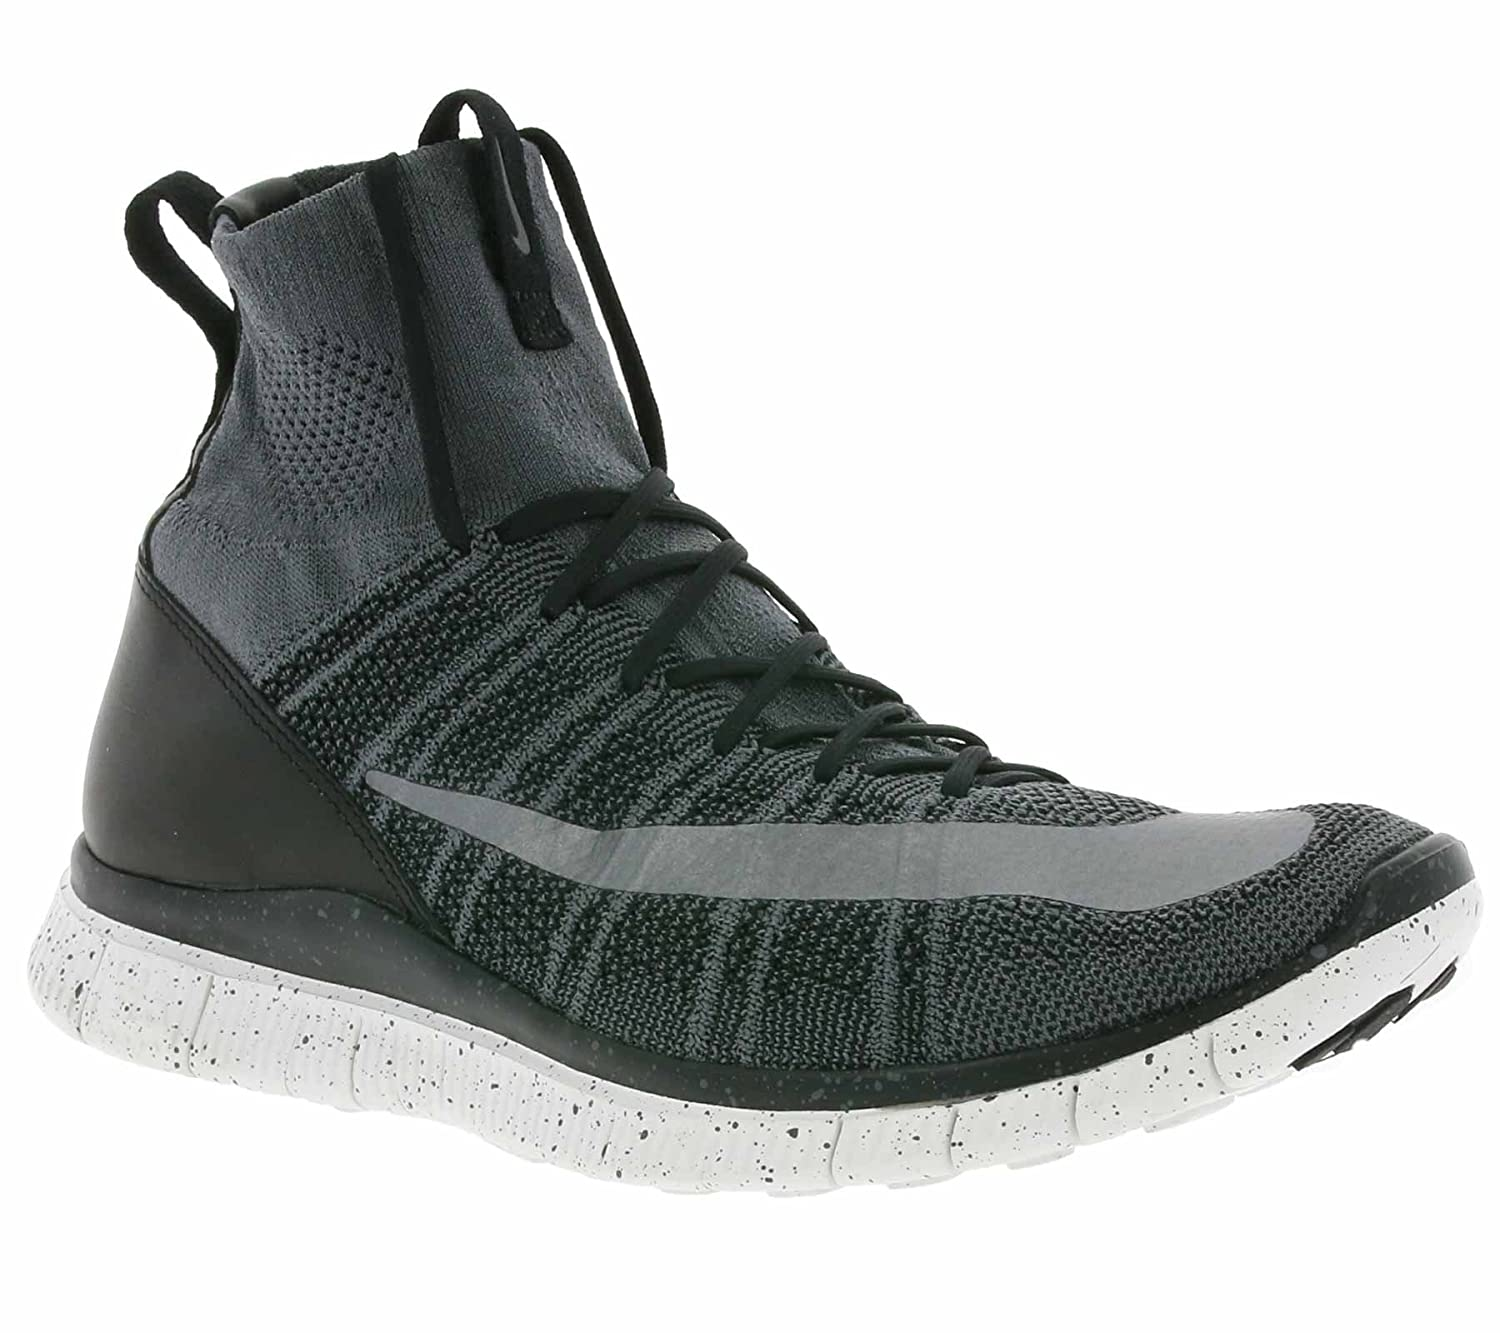 brand new 5744e b77ed Amazon.com   Nike Men s Free Flyknit Mercurial Running Shoes-Dark  Grey Silver   Road Running